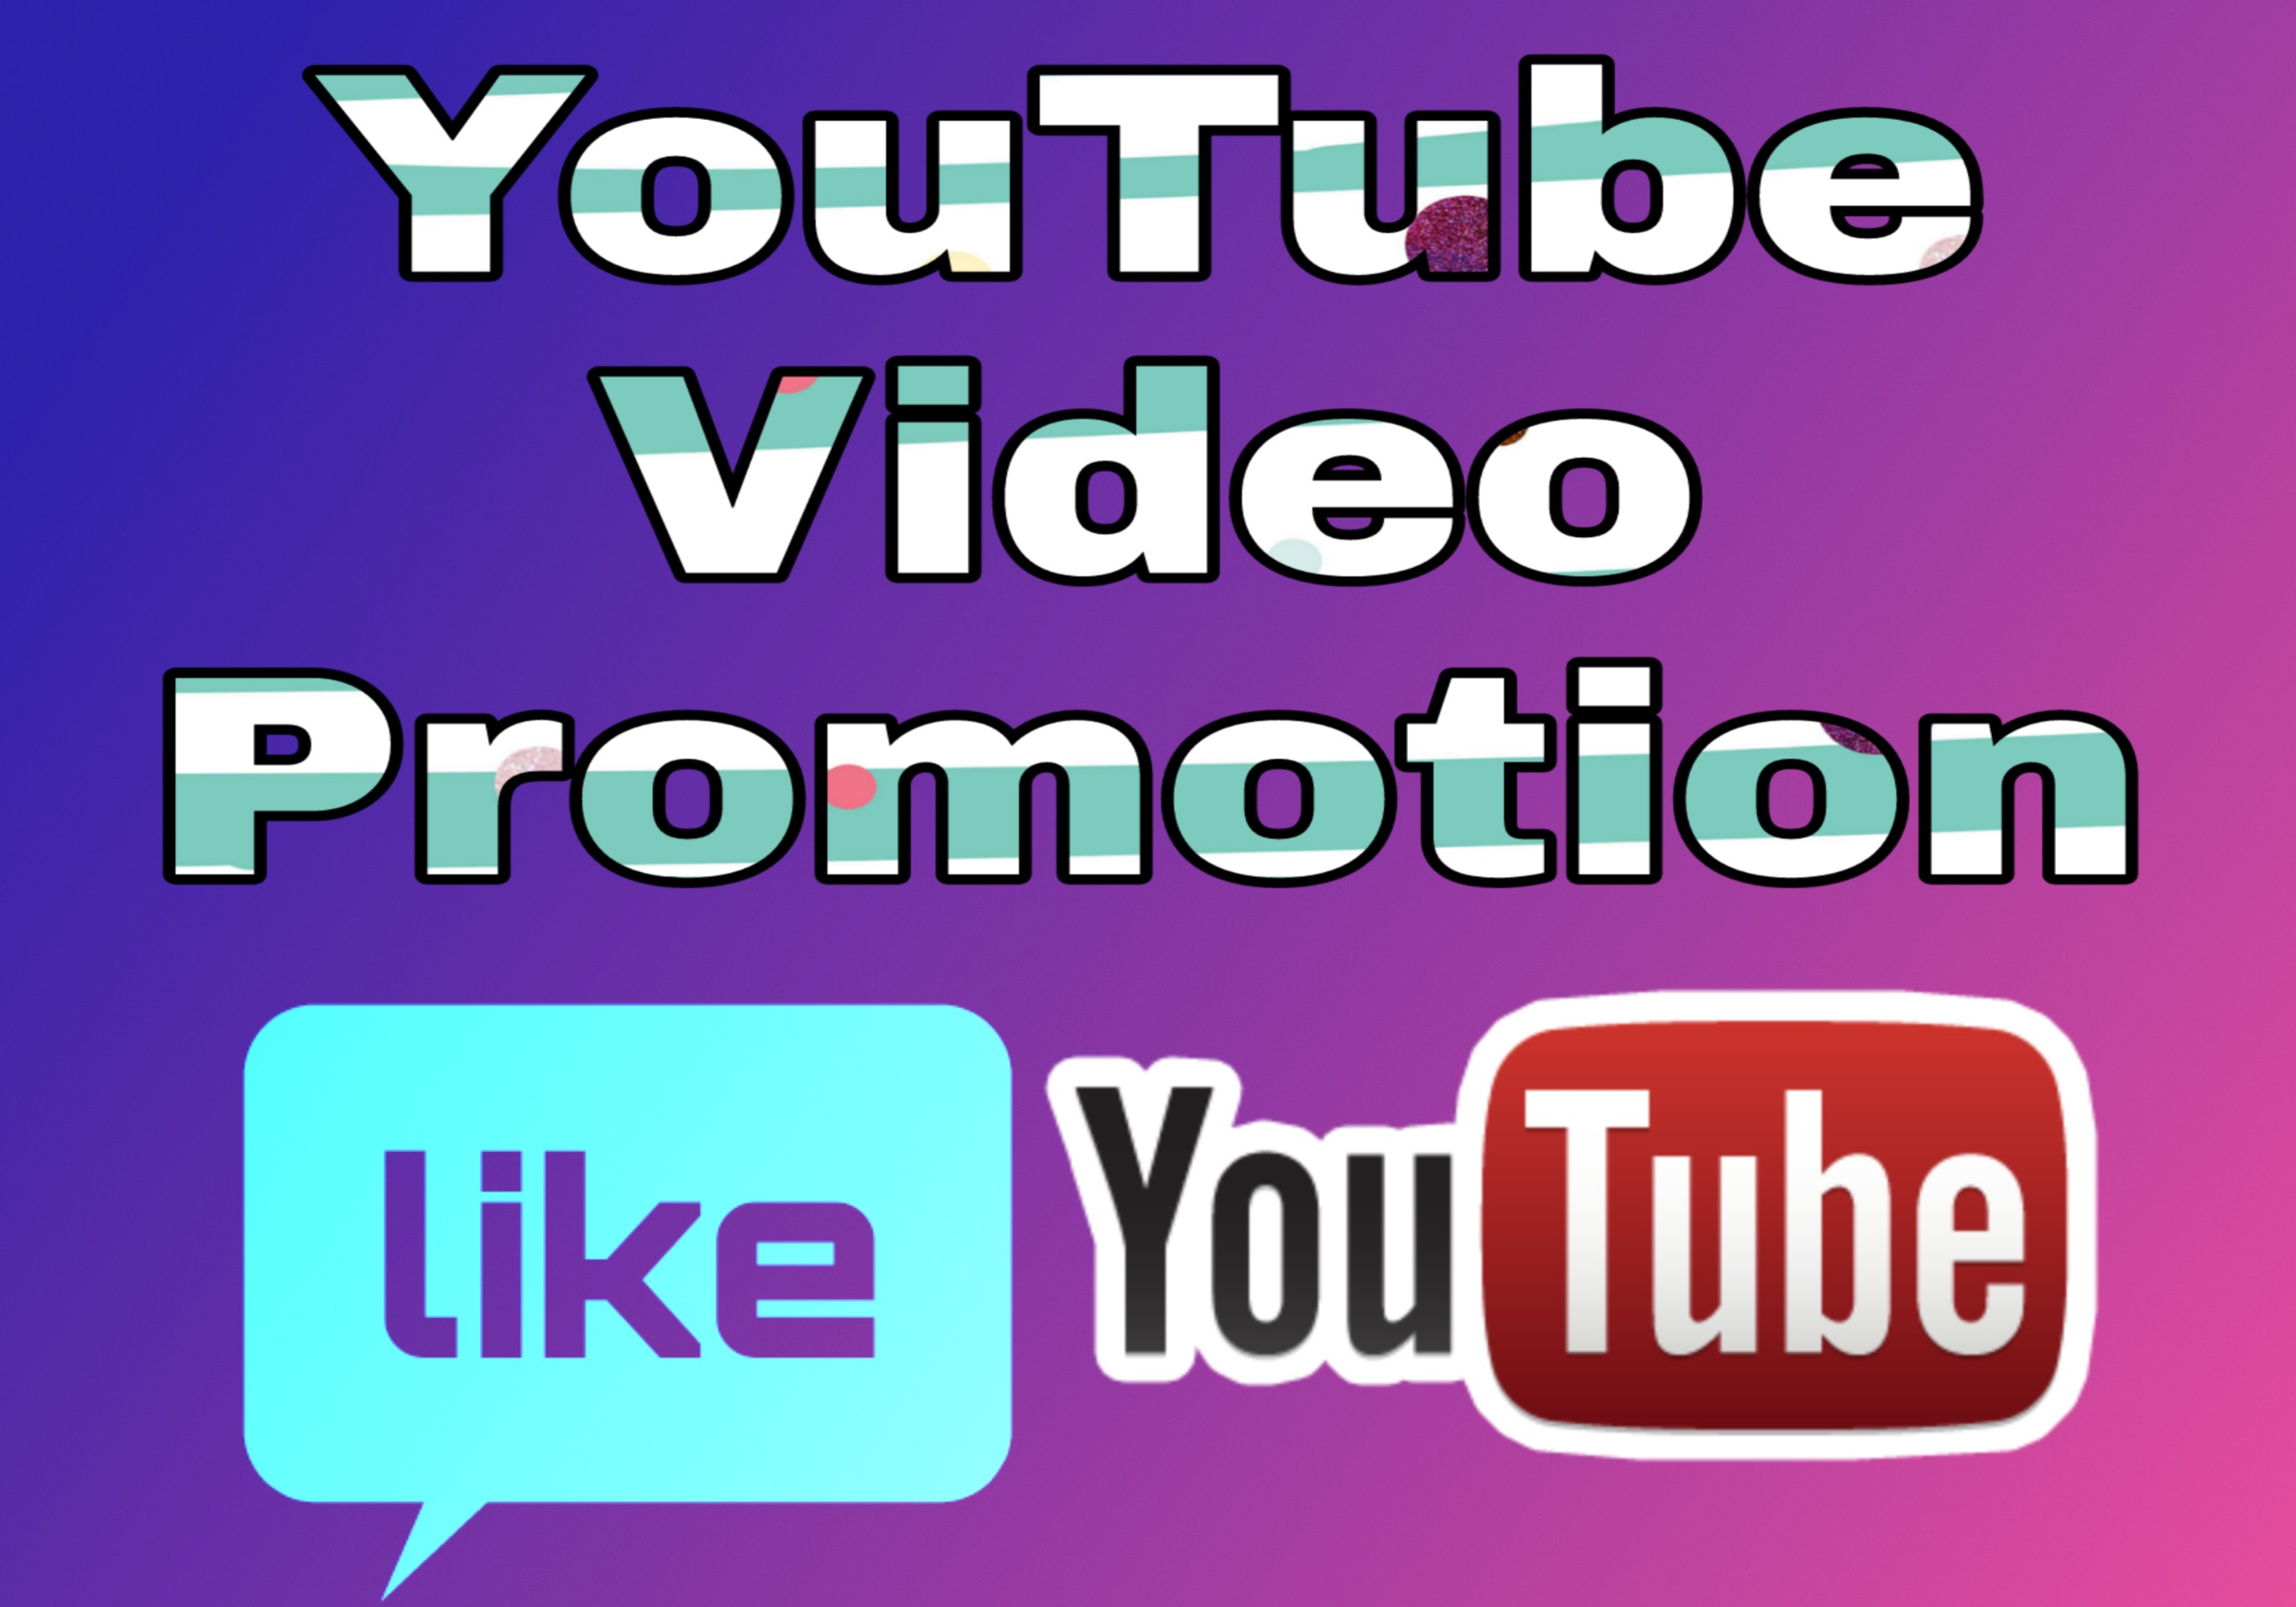 YouTube video promotion package very honestly